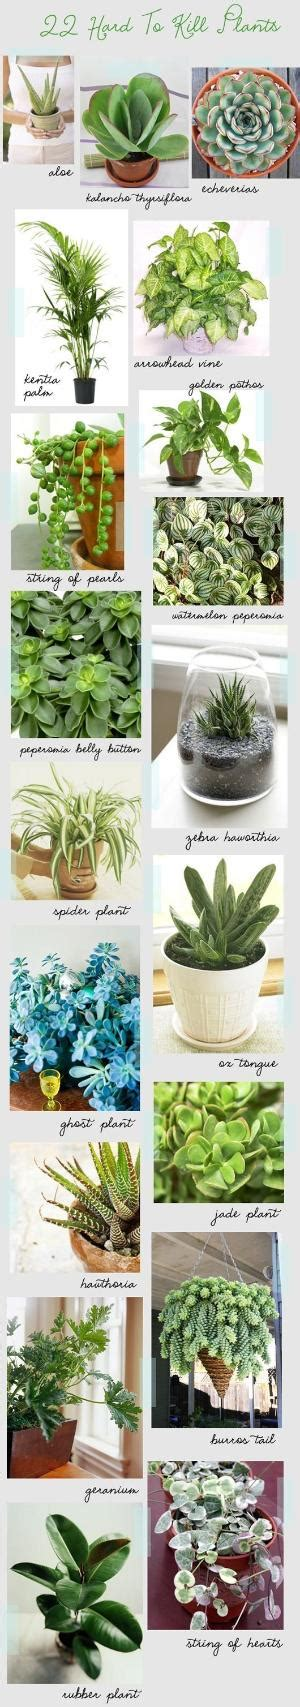 haworthia collection 5 plants easy to grow hard to kill hard to kill container garden plants